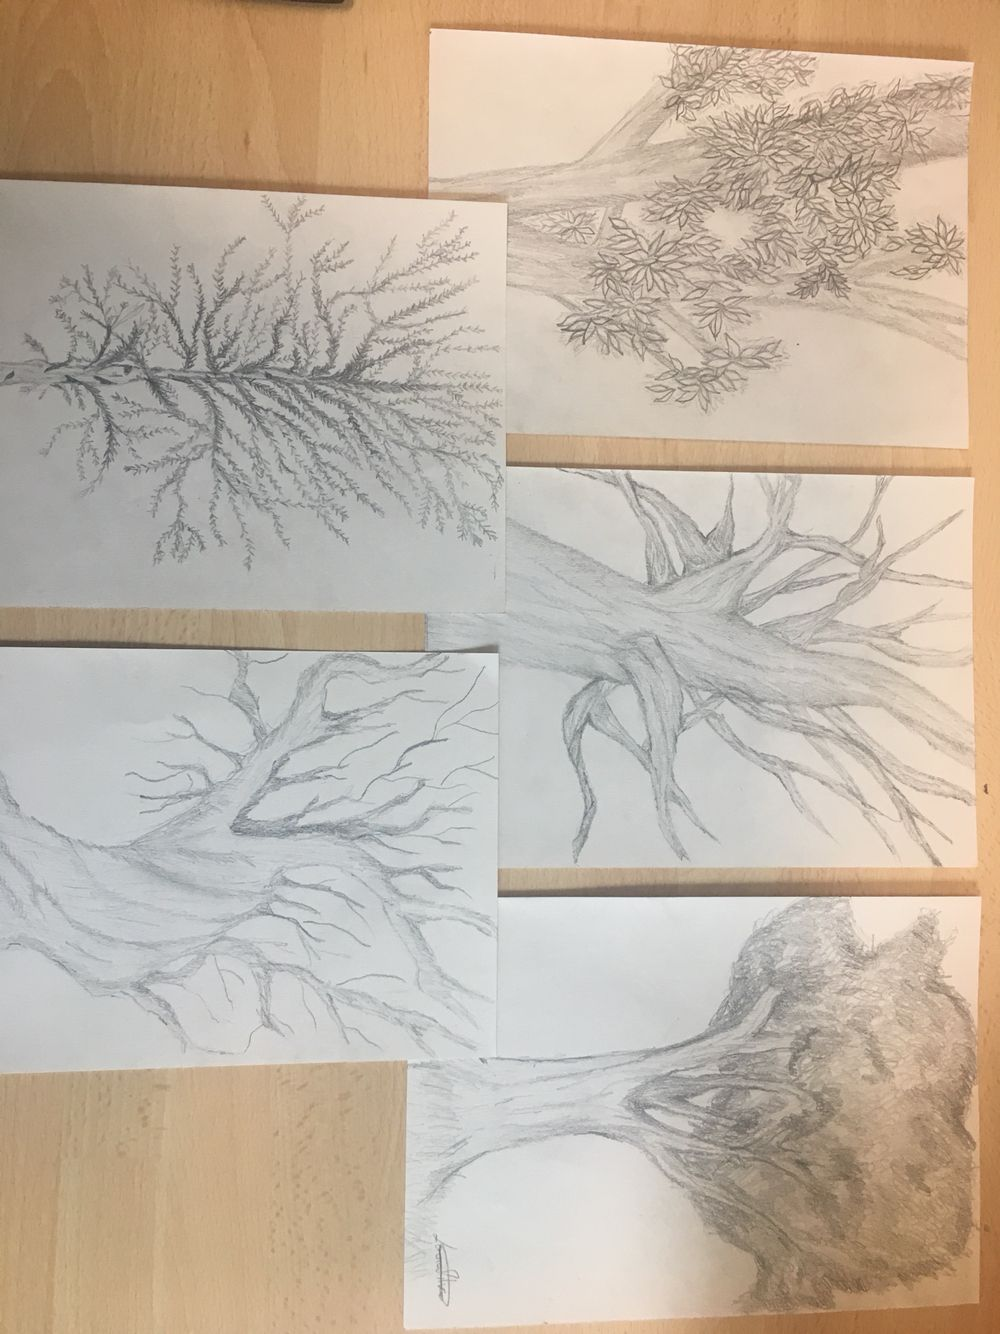 # variety of trees